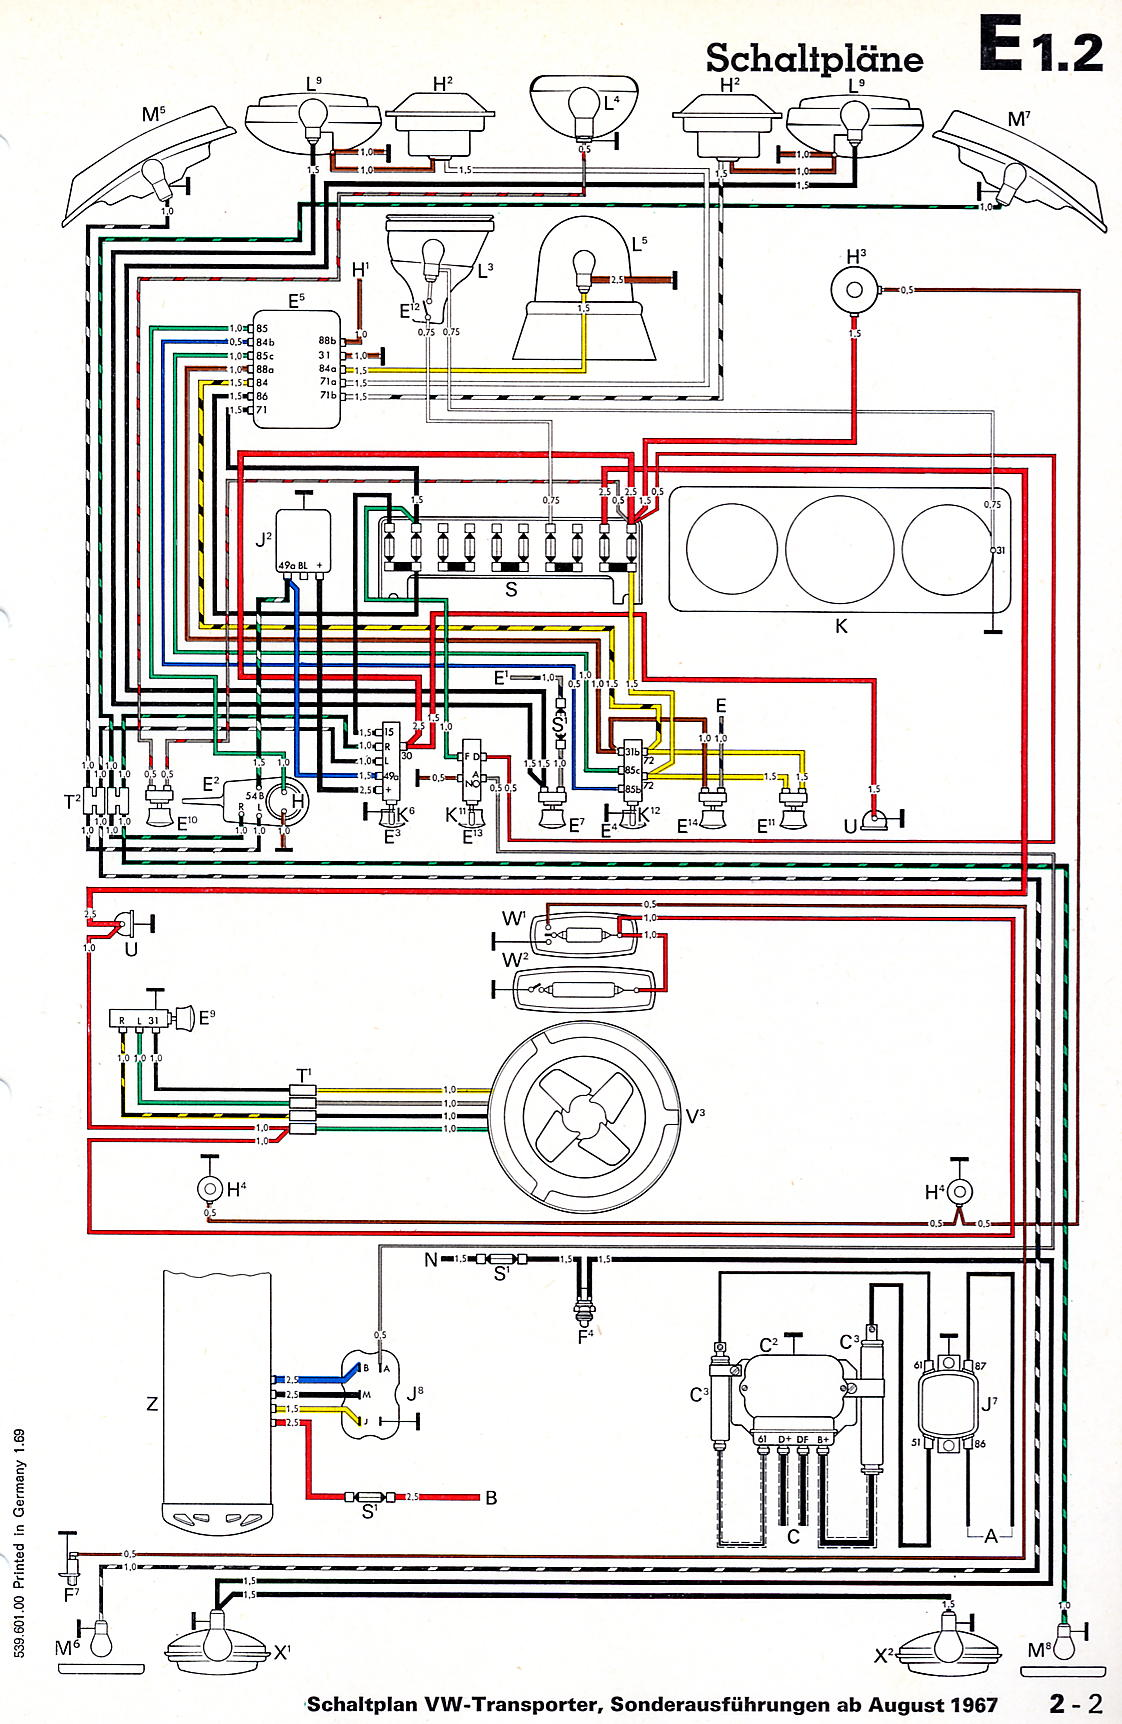 vw bus 1972 wiring diagram as well 1969 vw bus wiring diagram1972 vw bus wiring diagram wiring diagram schematics1972 vw wiring diagram wiring diagram data 72 vw